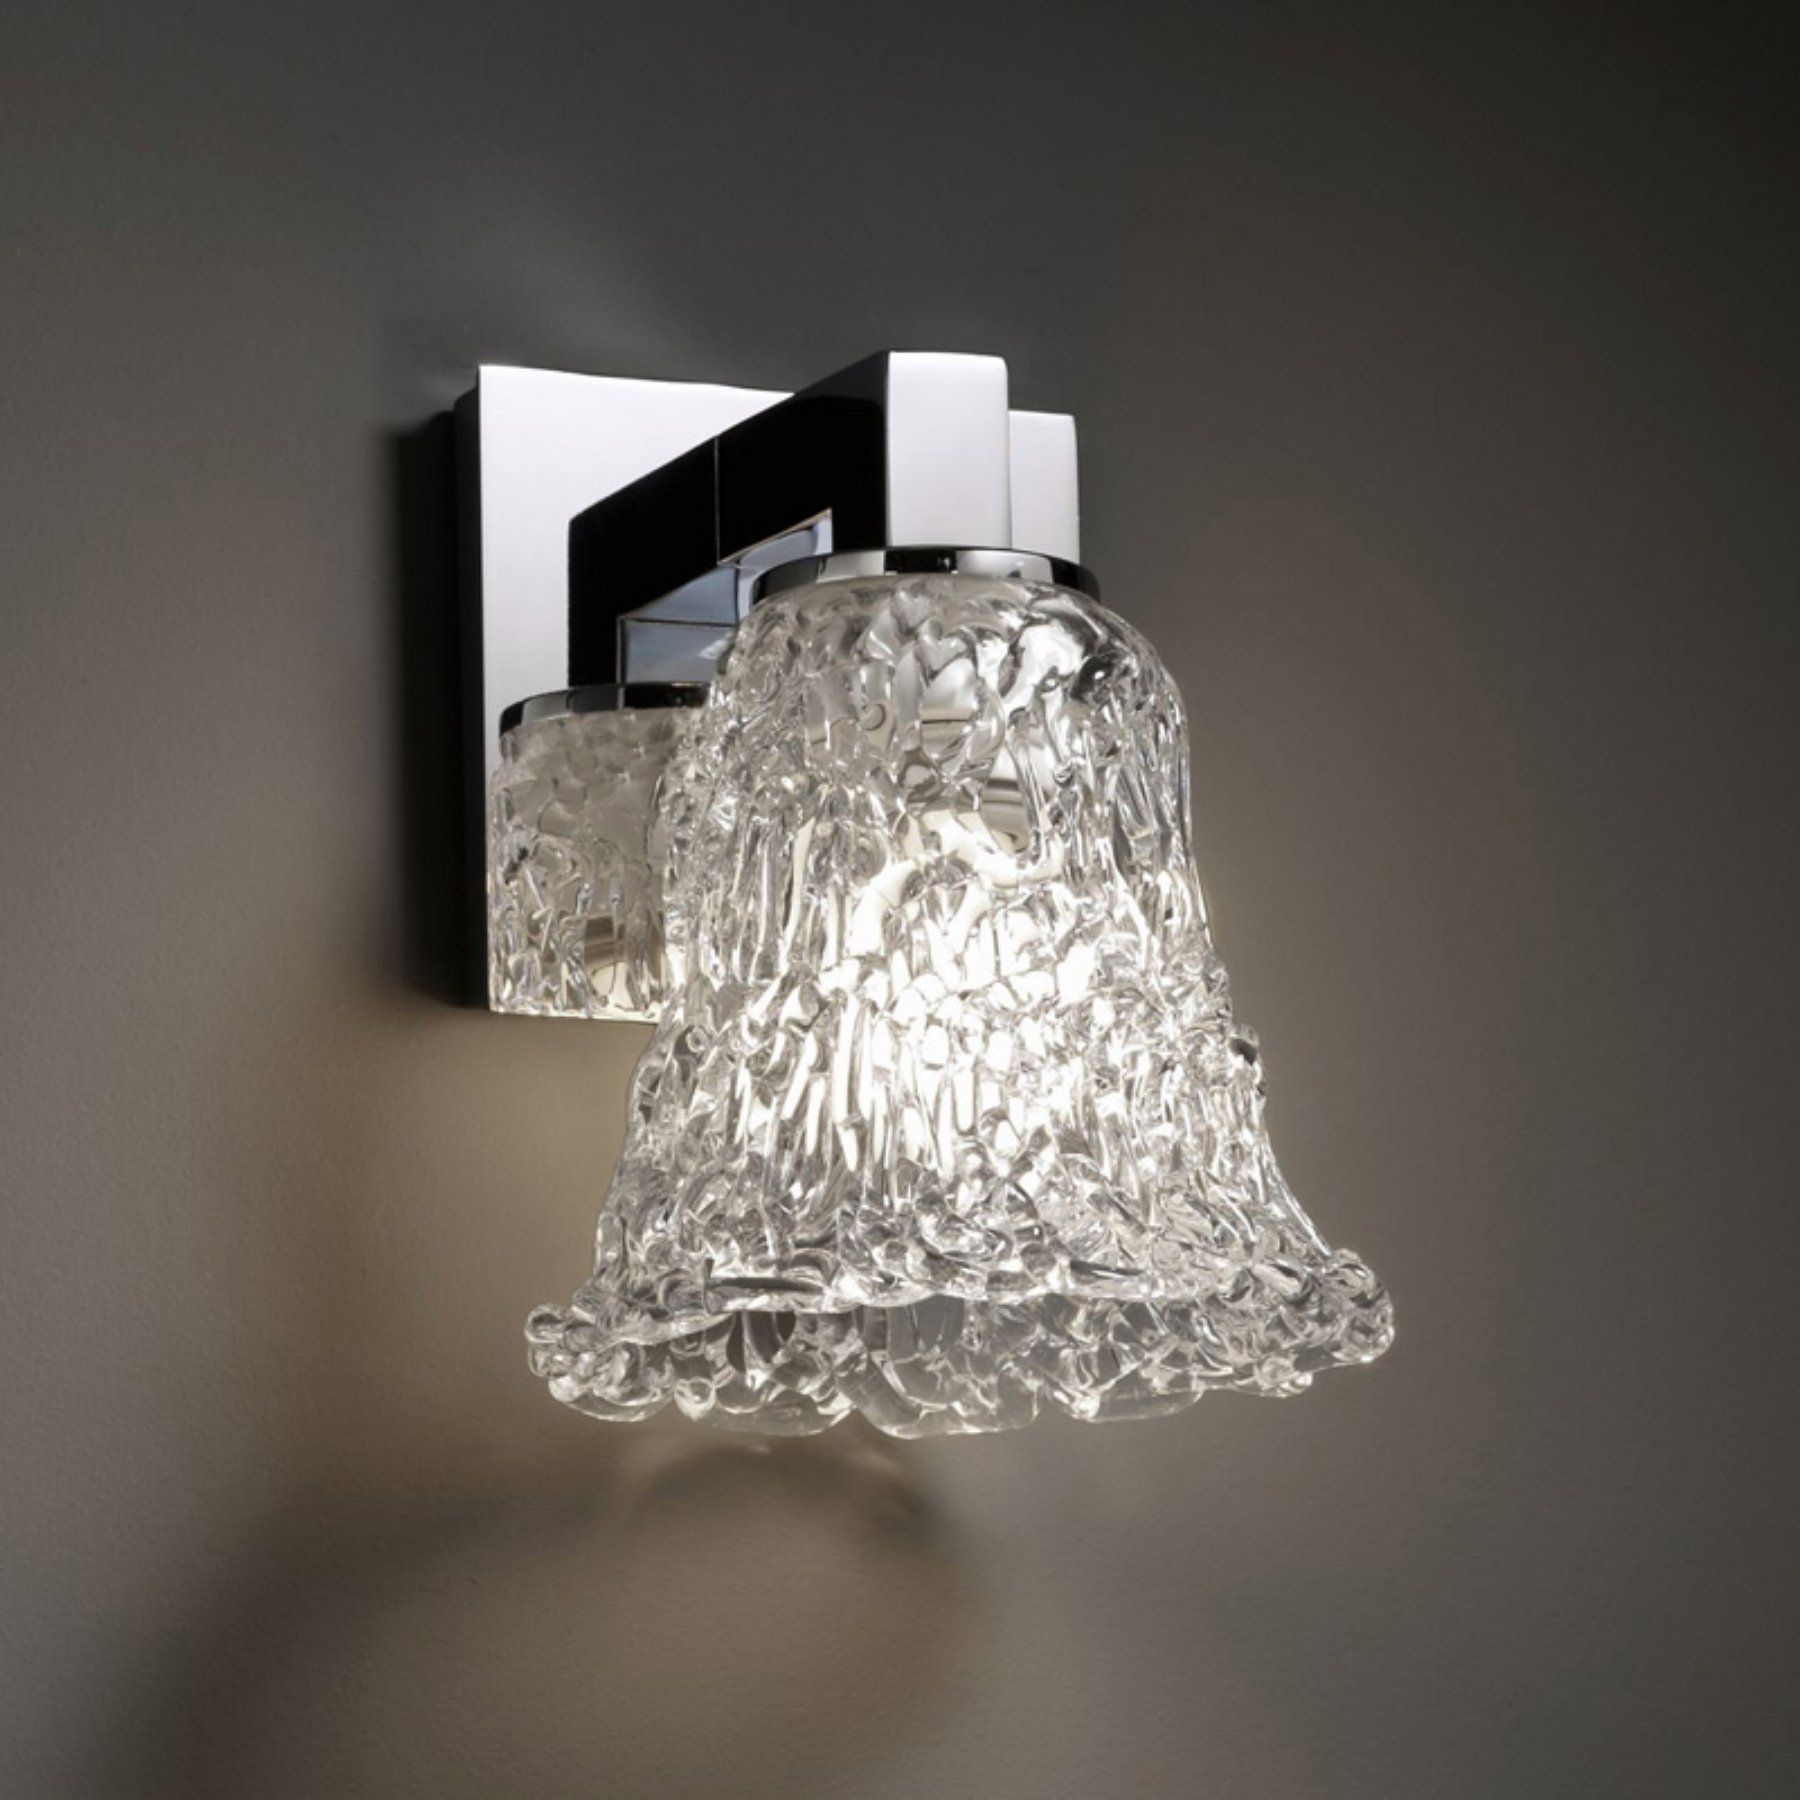 Justice design group gla modular light wall sconce round